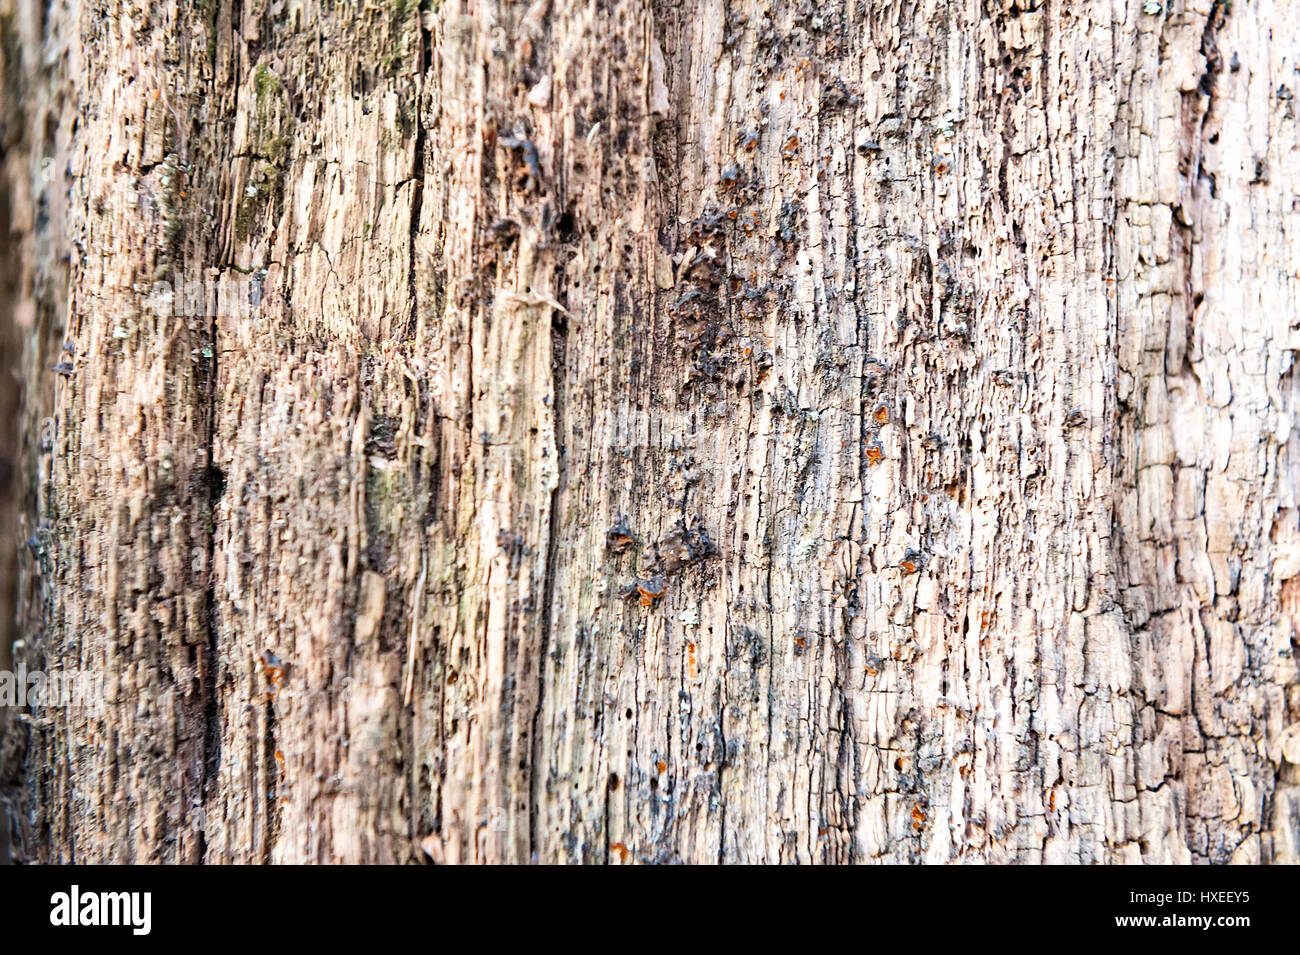 Weathered obsolete rough cracked textured wooden background - Stock Image